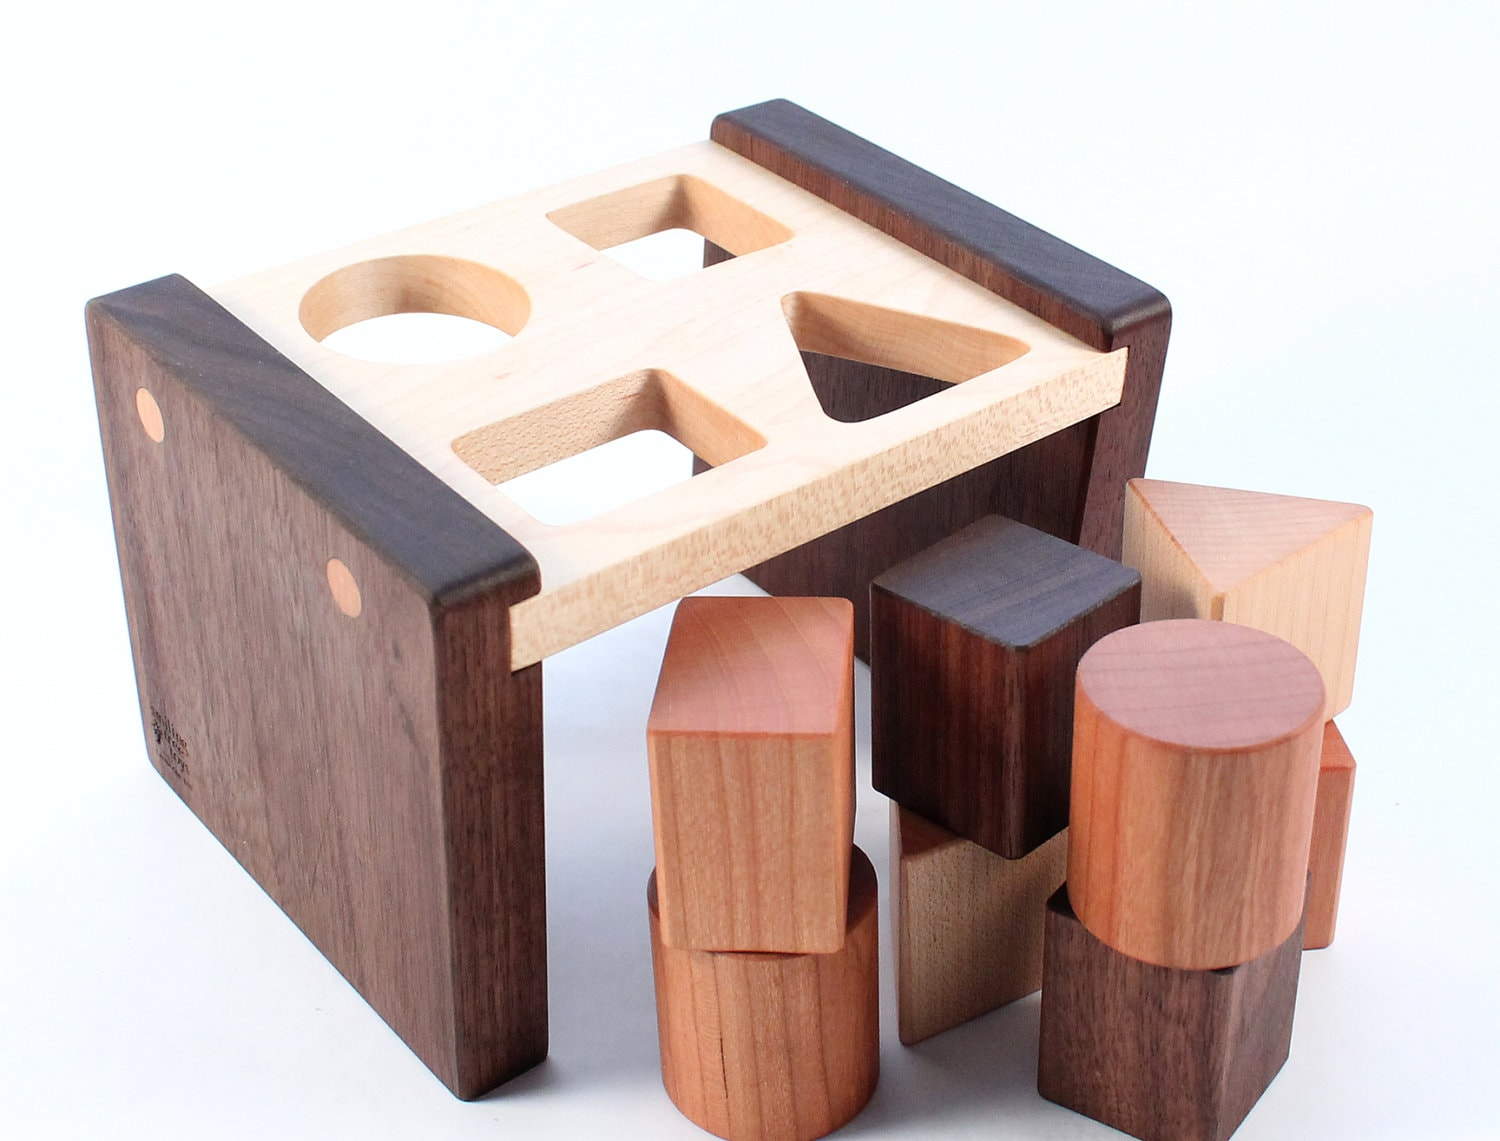 wooden shape sorter toy - a natural and organic educational wood toy, learning fun for baby and toddler - SmilingTreeToys